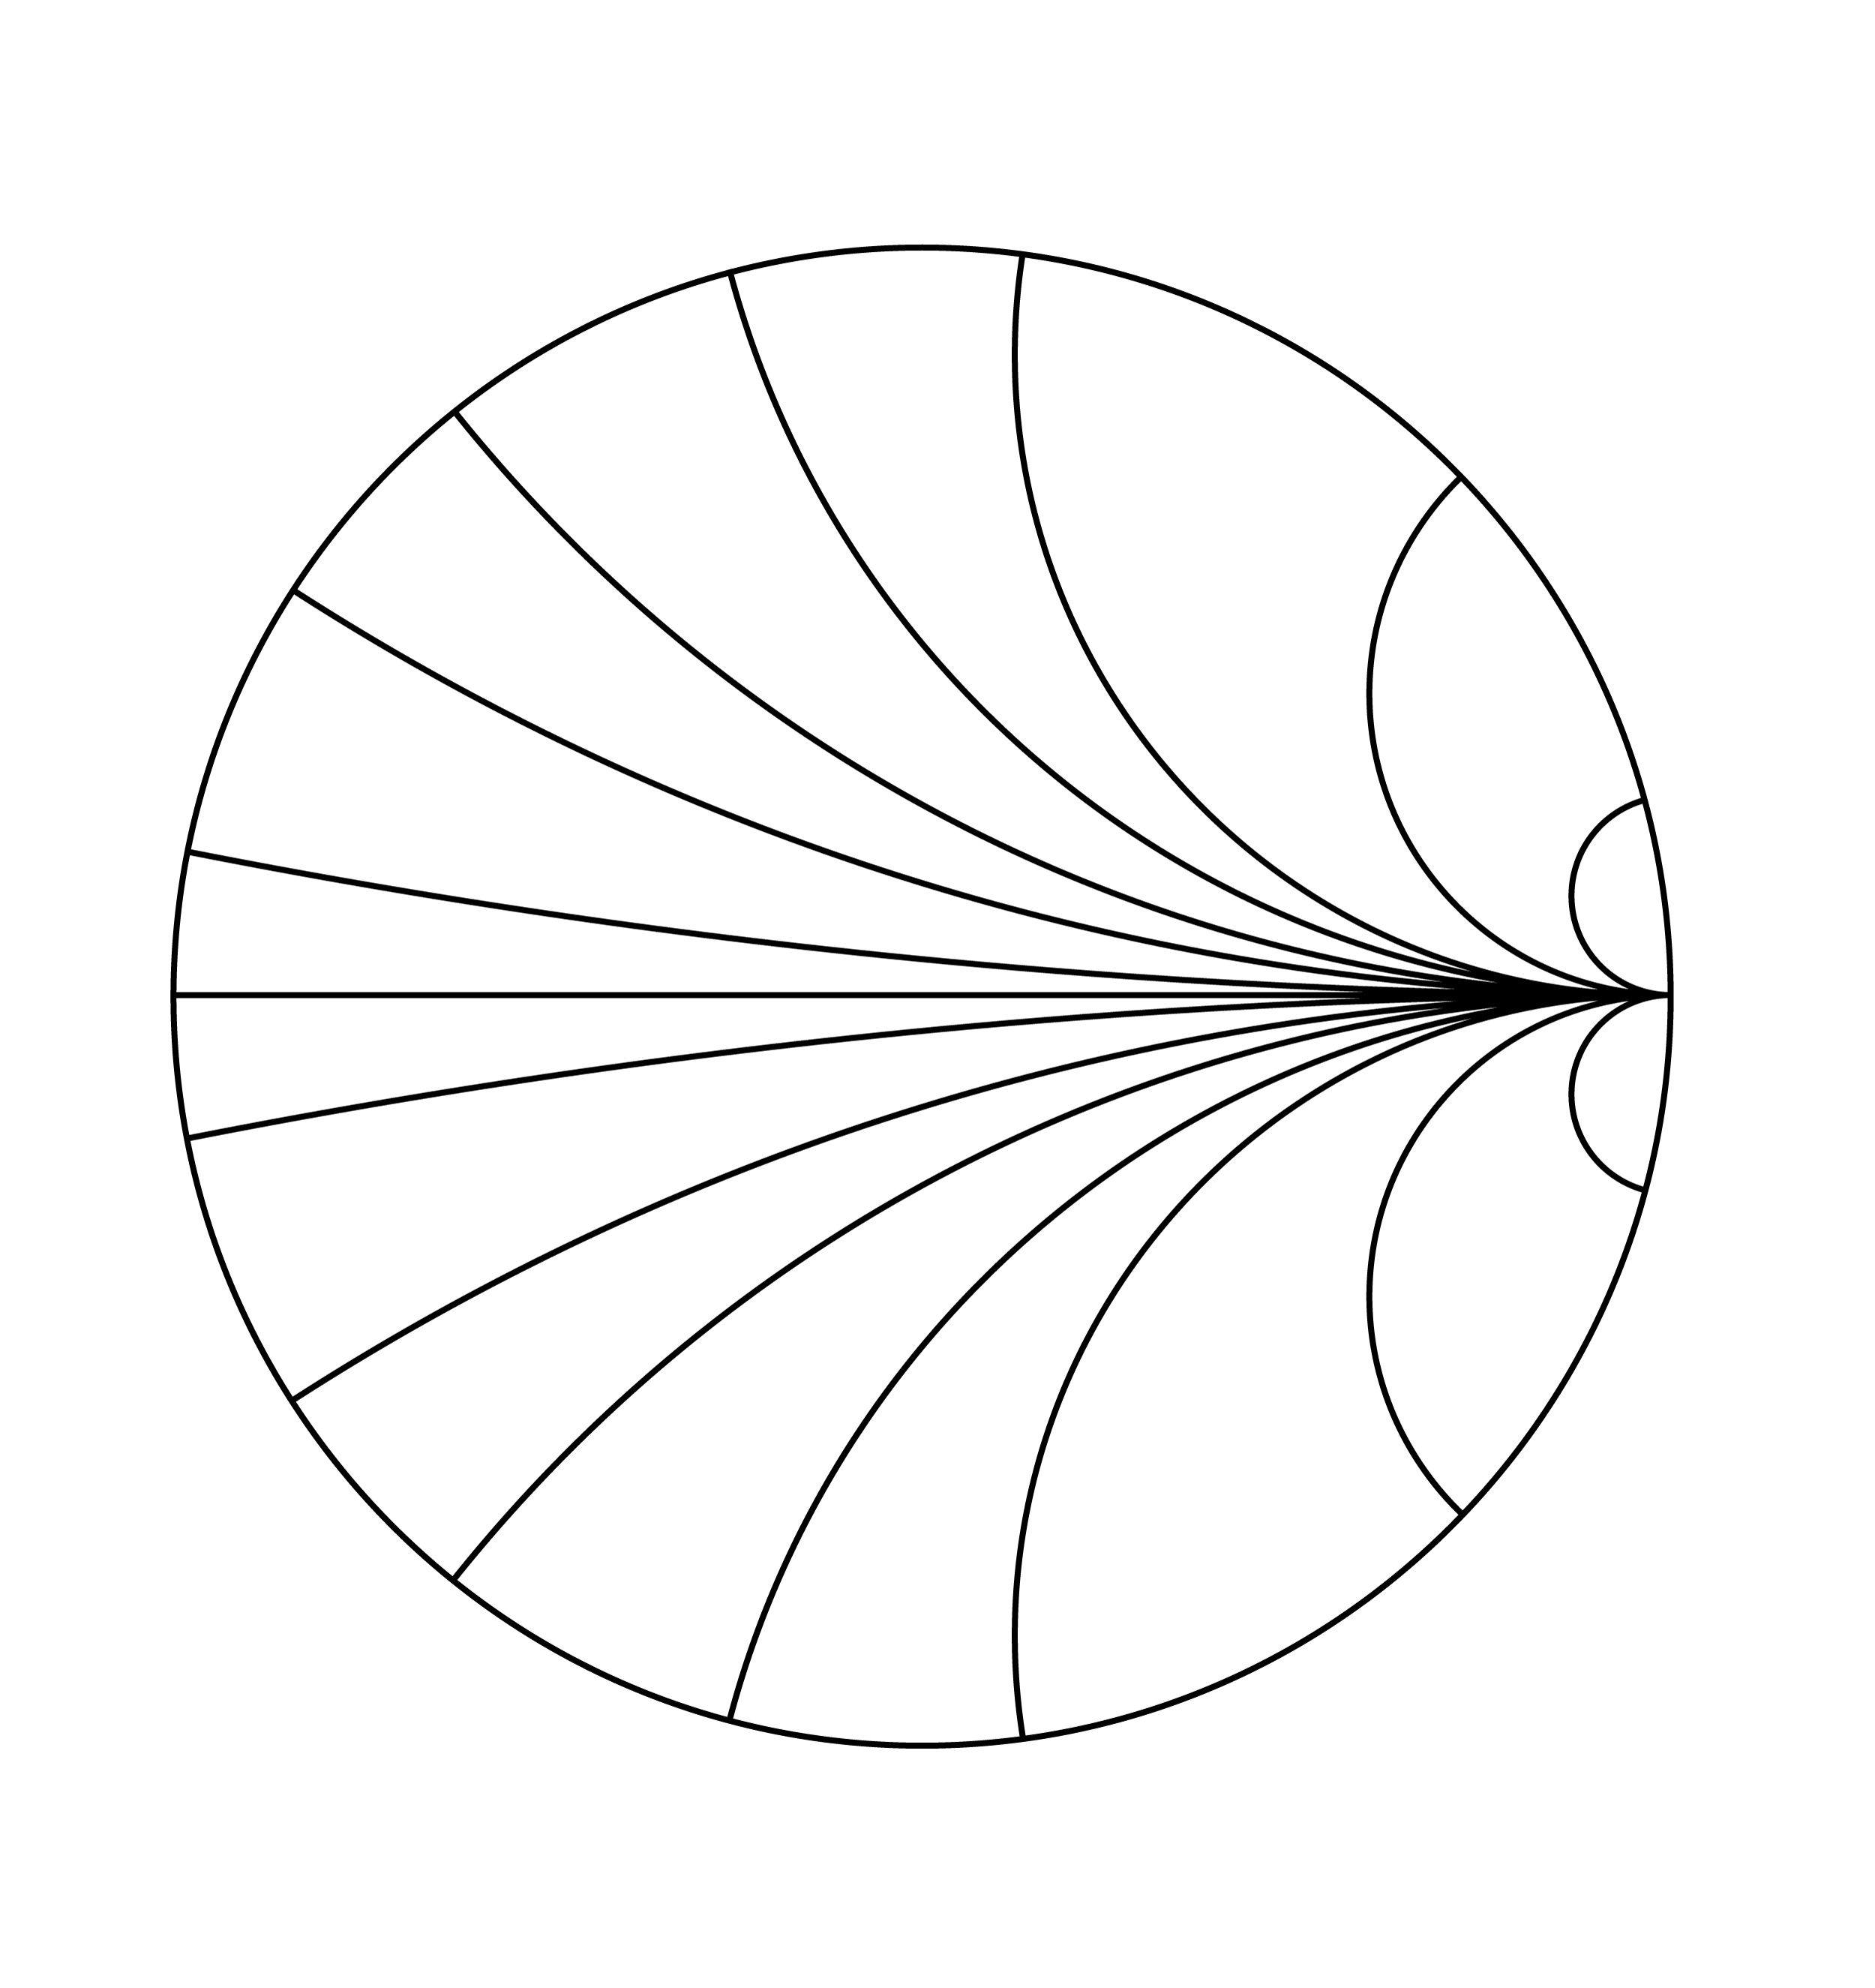 Mathematical Construction and Properties of the Smith Chart